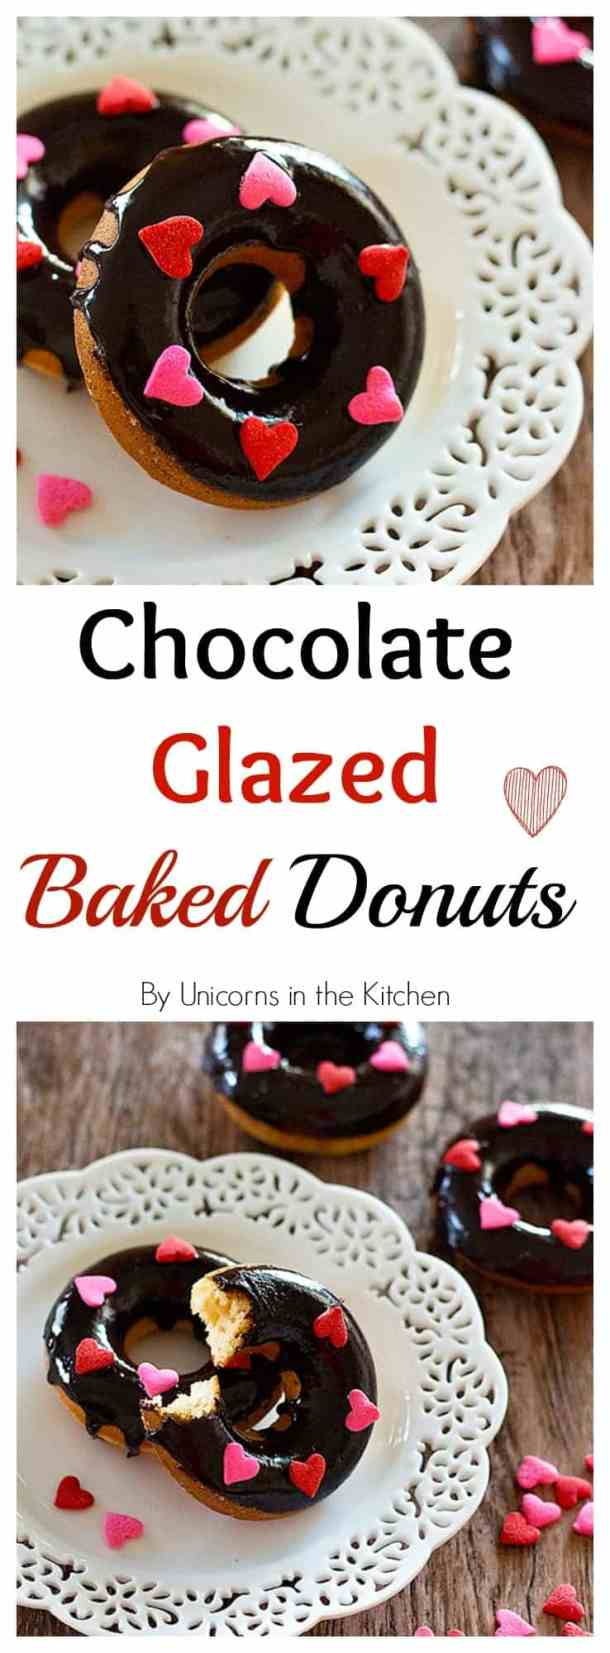 These chocolate glazed baked donuts will be your new favorite donuts! No frying required so you can just make them in big batches and enjoy having delicious donuts!